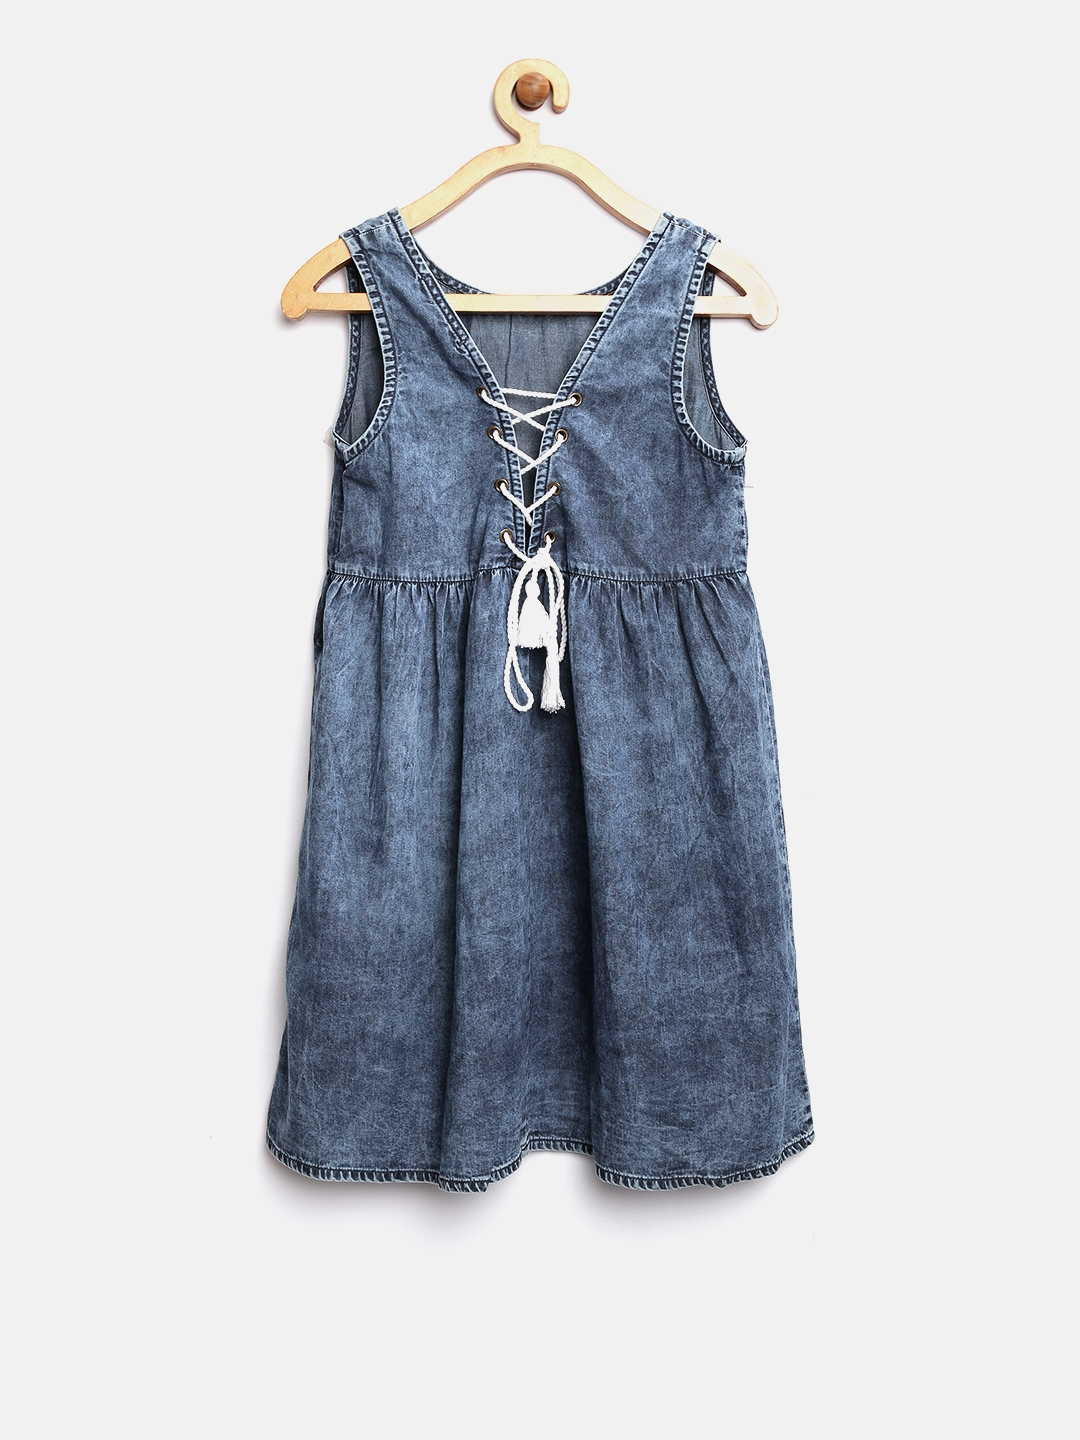 be1a4568d7 Buy Pepe Jeans Girls Blue Solid Denim A Line Dress - Dresses for ...